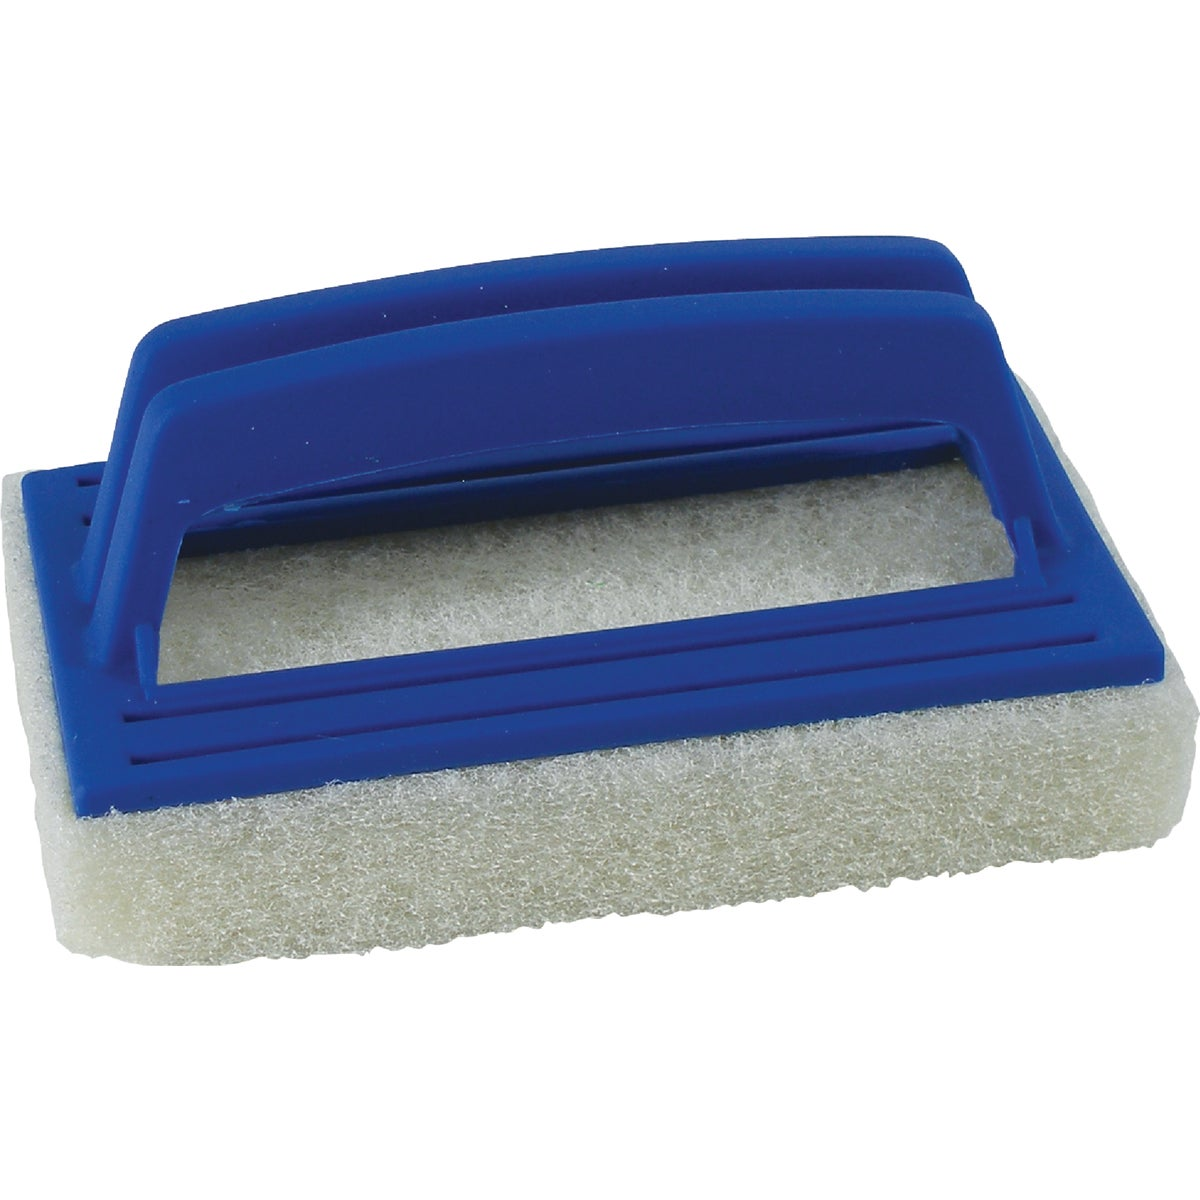 JED Pool Tools SCOURING WALL BRUSH 70-286